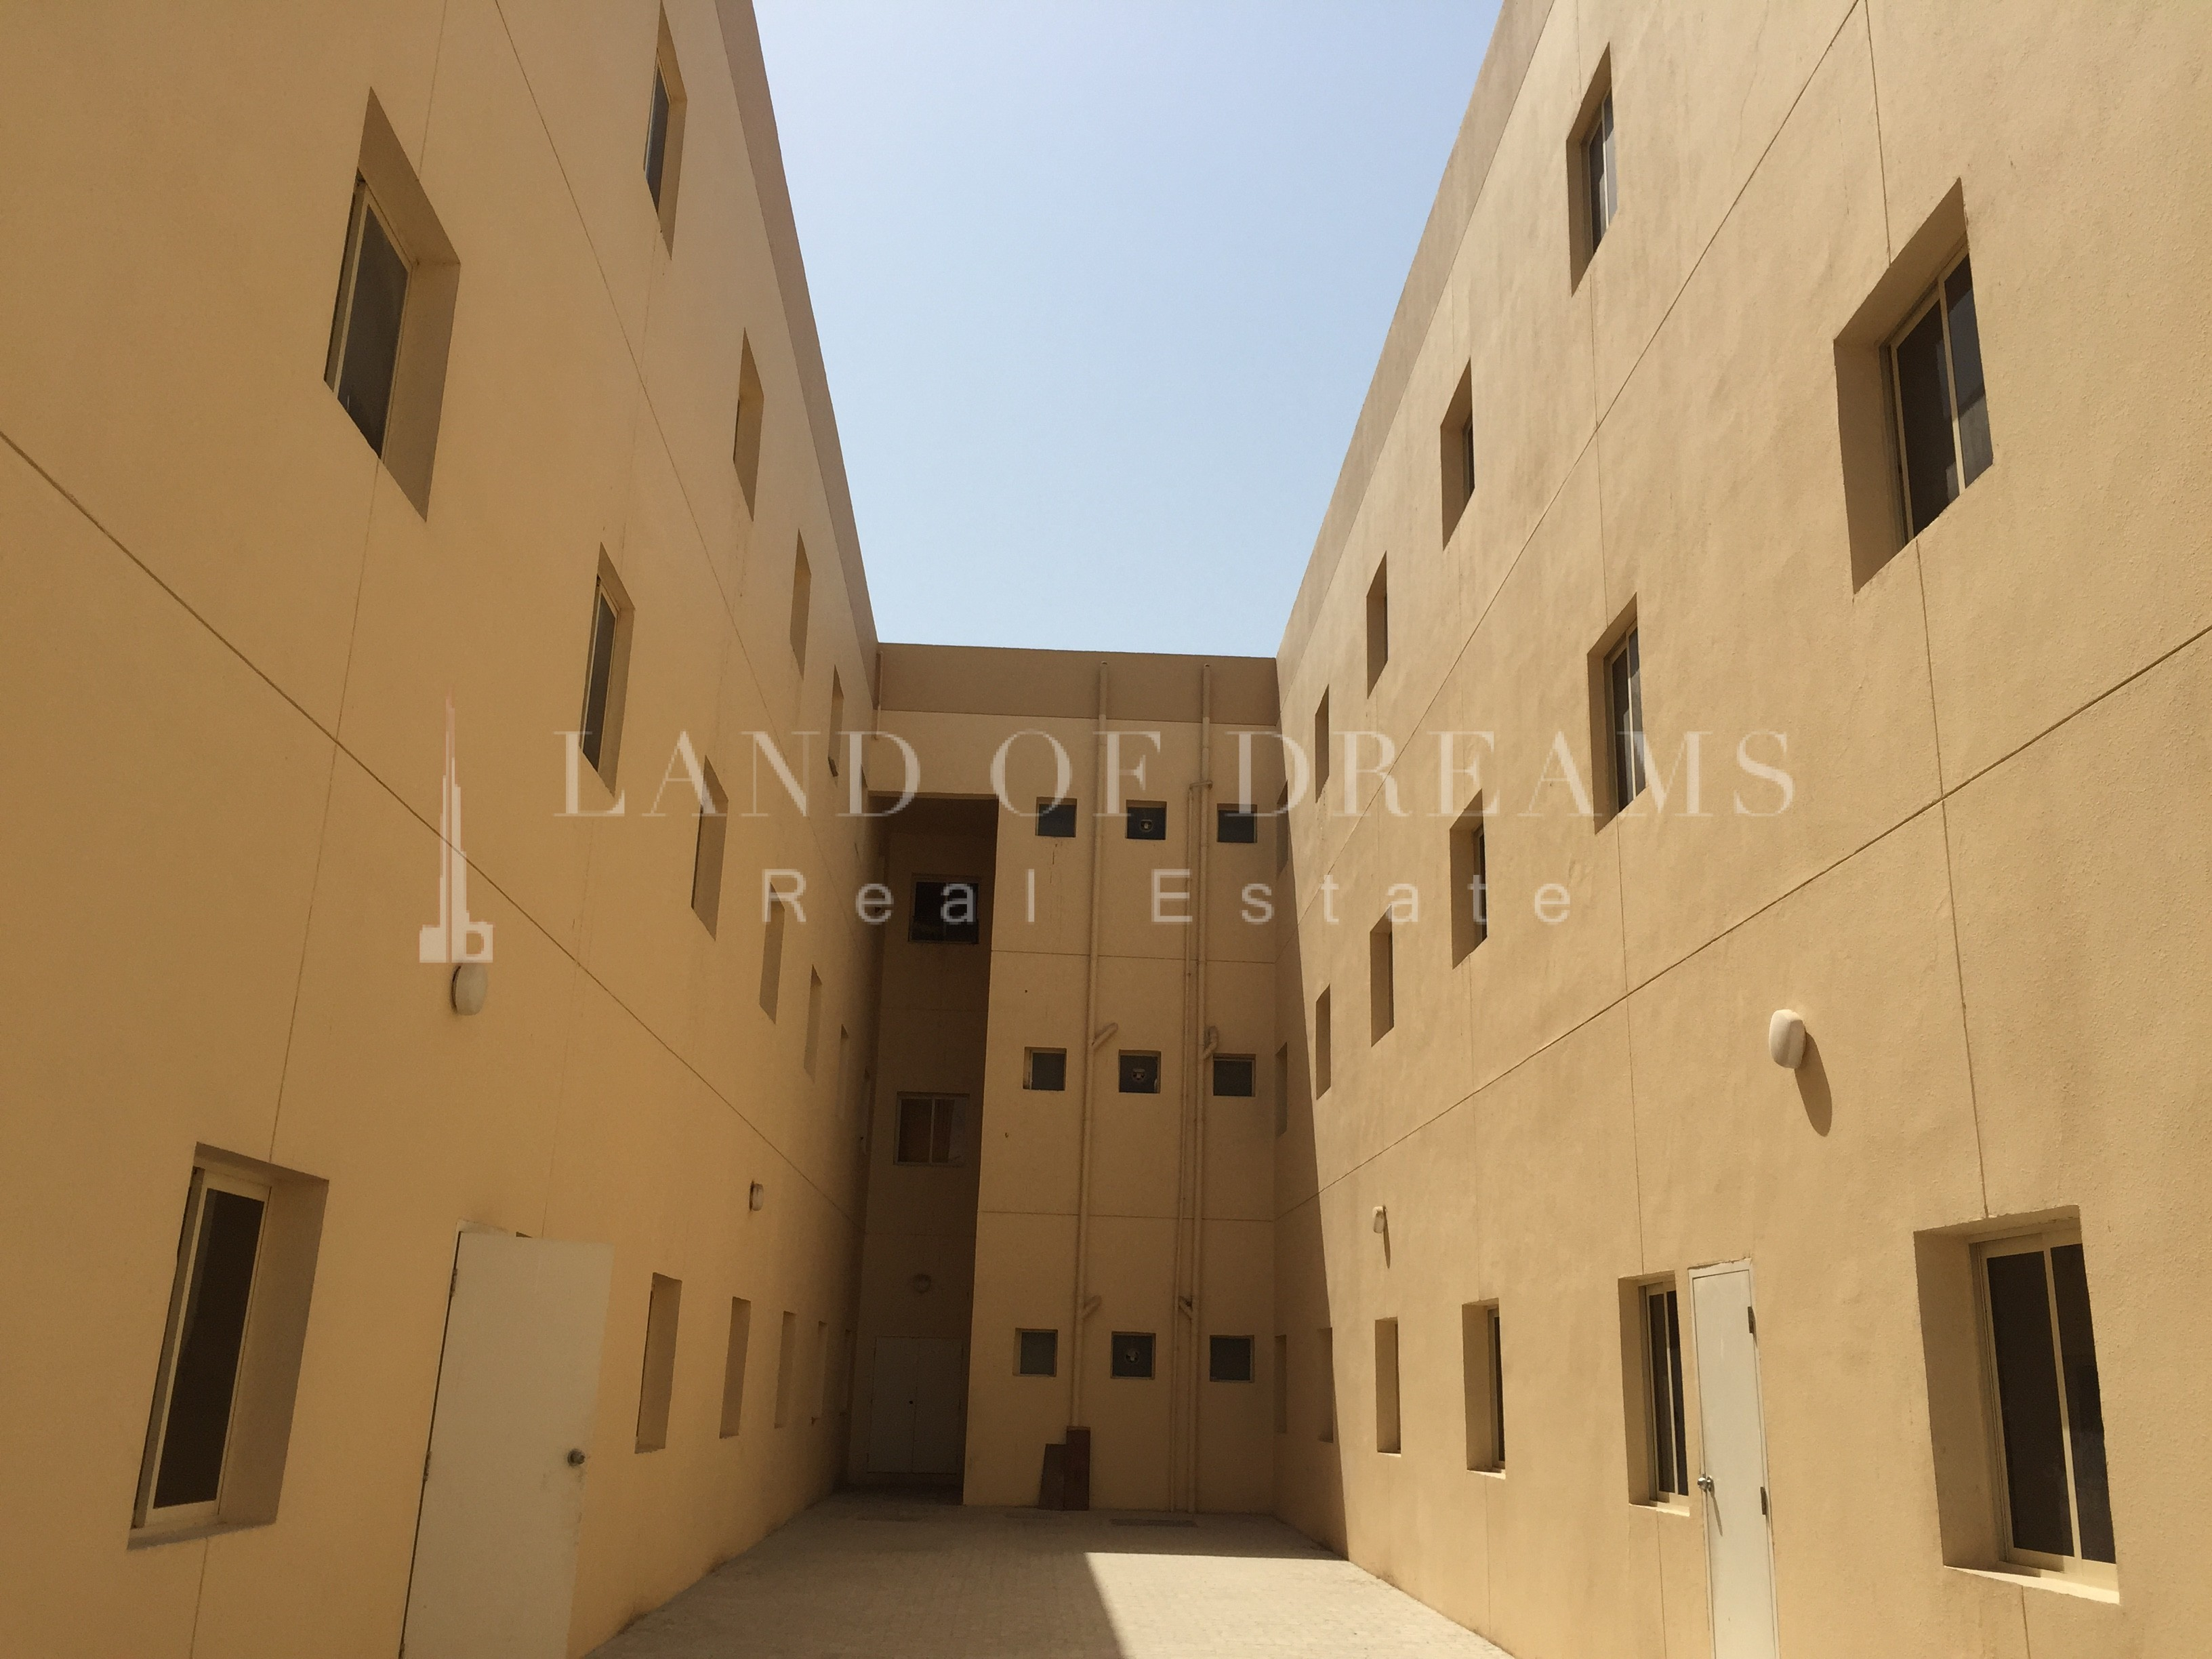 aed-3300-all-inclusive-central-ac-in-dip-2